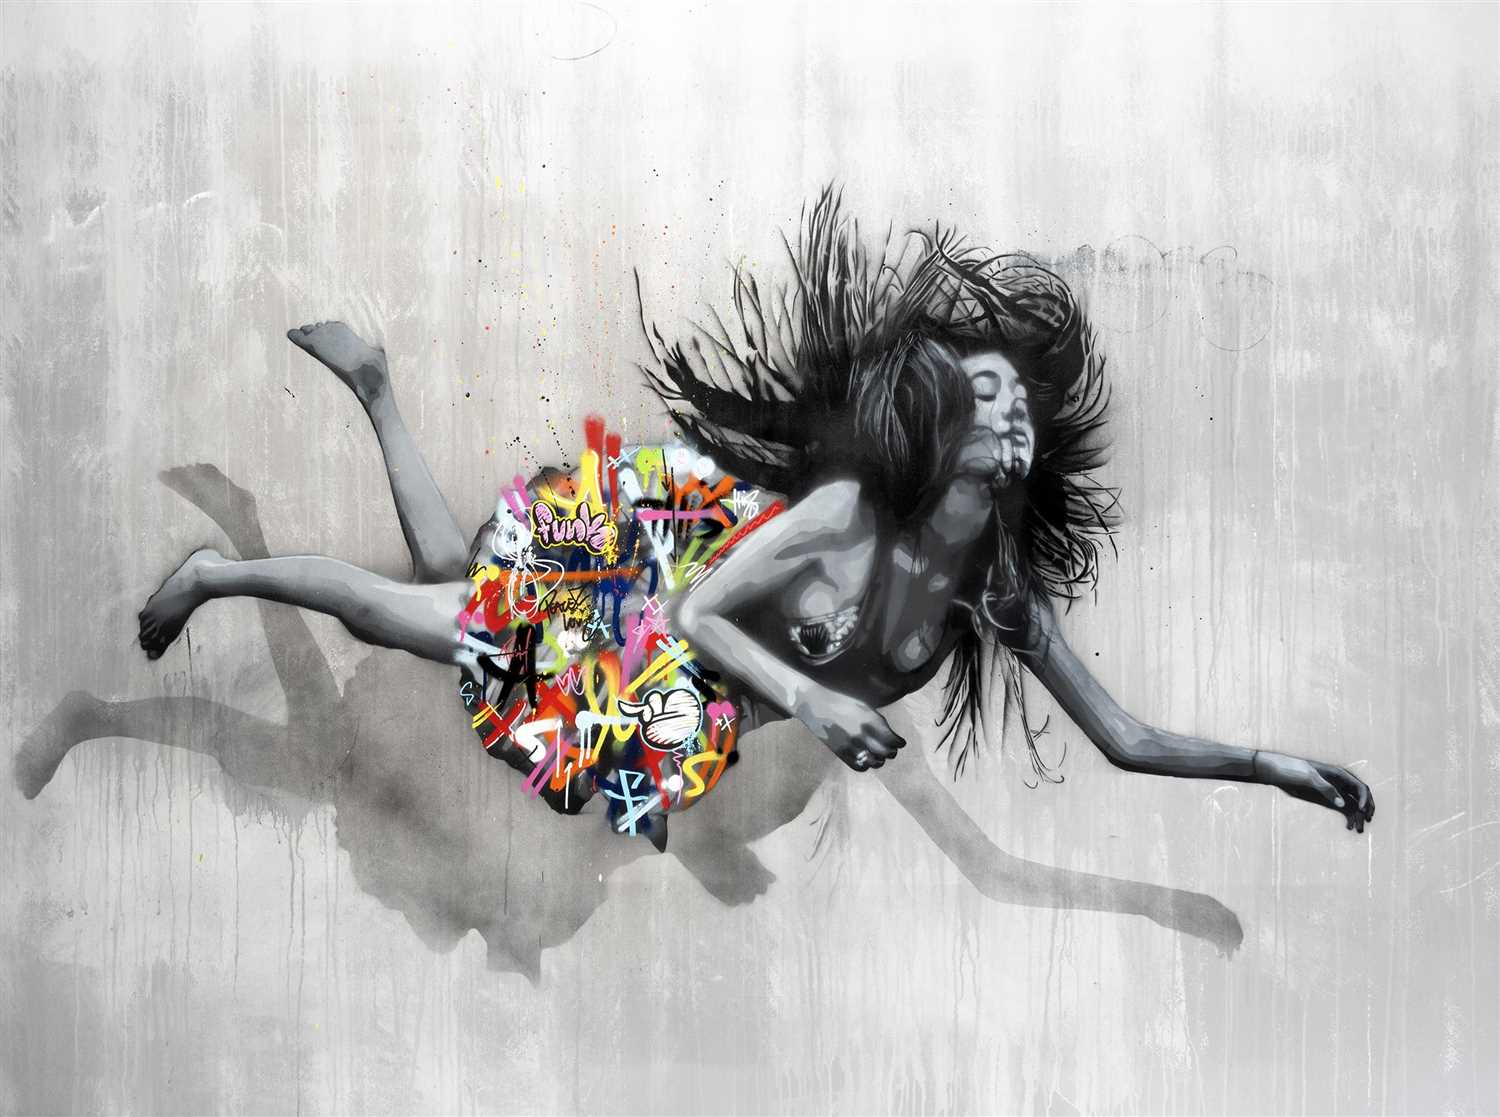 Lot 421 - Martin Whatson & Snik (Collaboration), 'Falling Girl', 2016